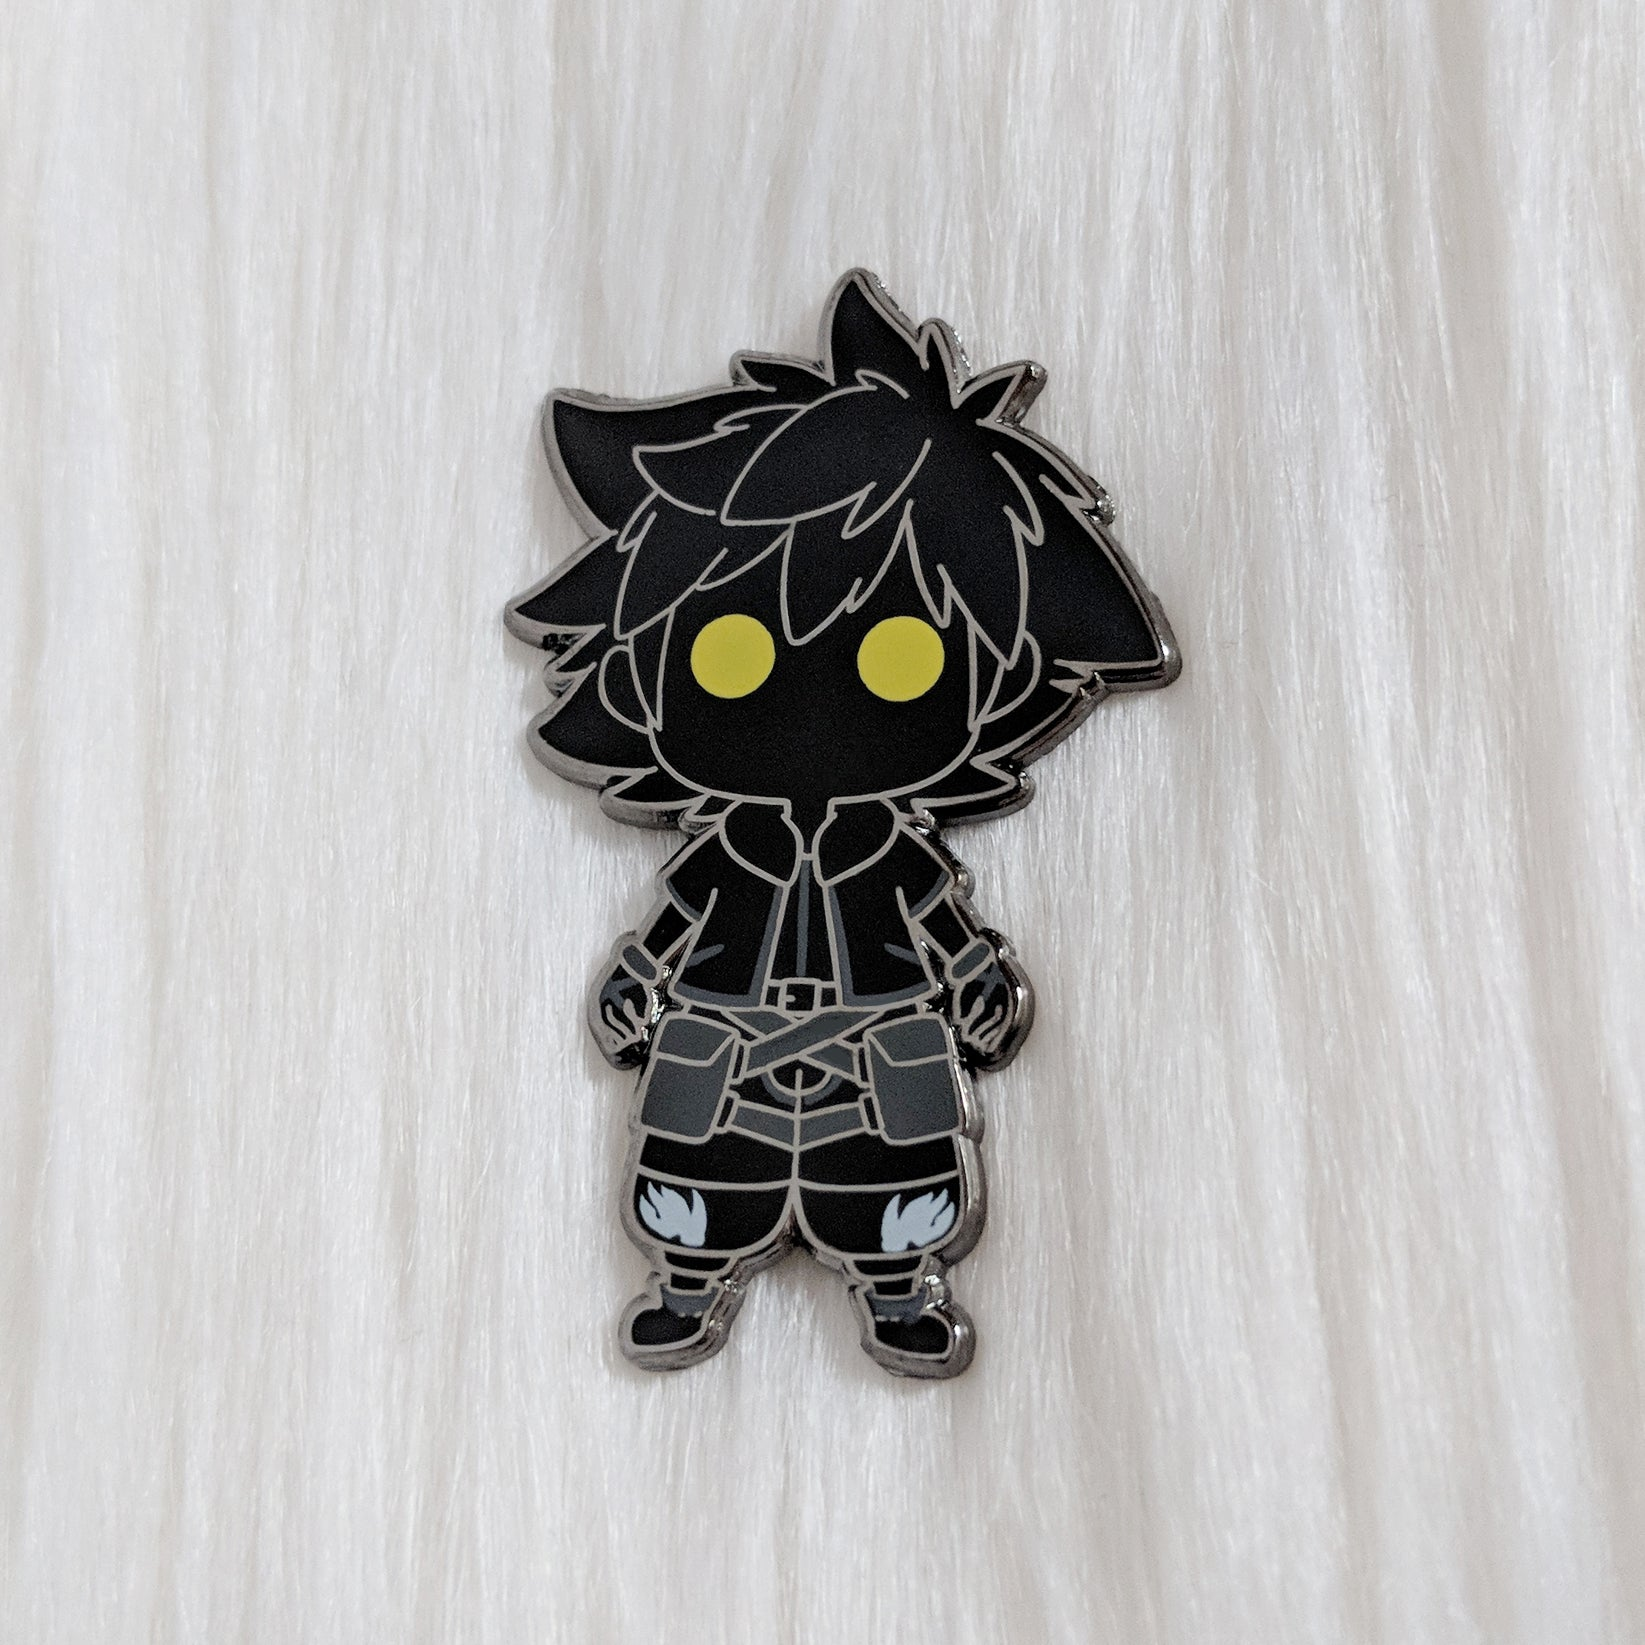 Anti-Sora - Enamel Pin